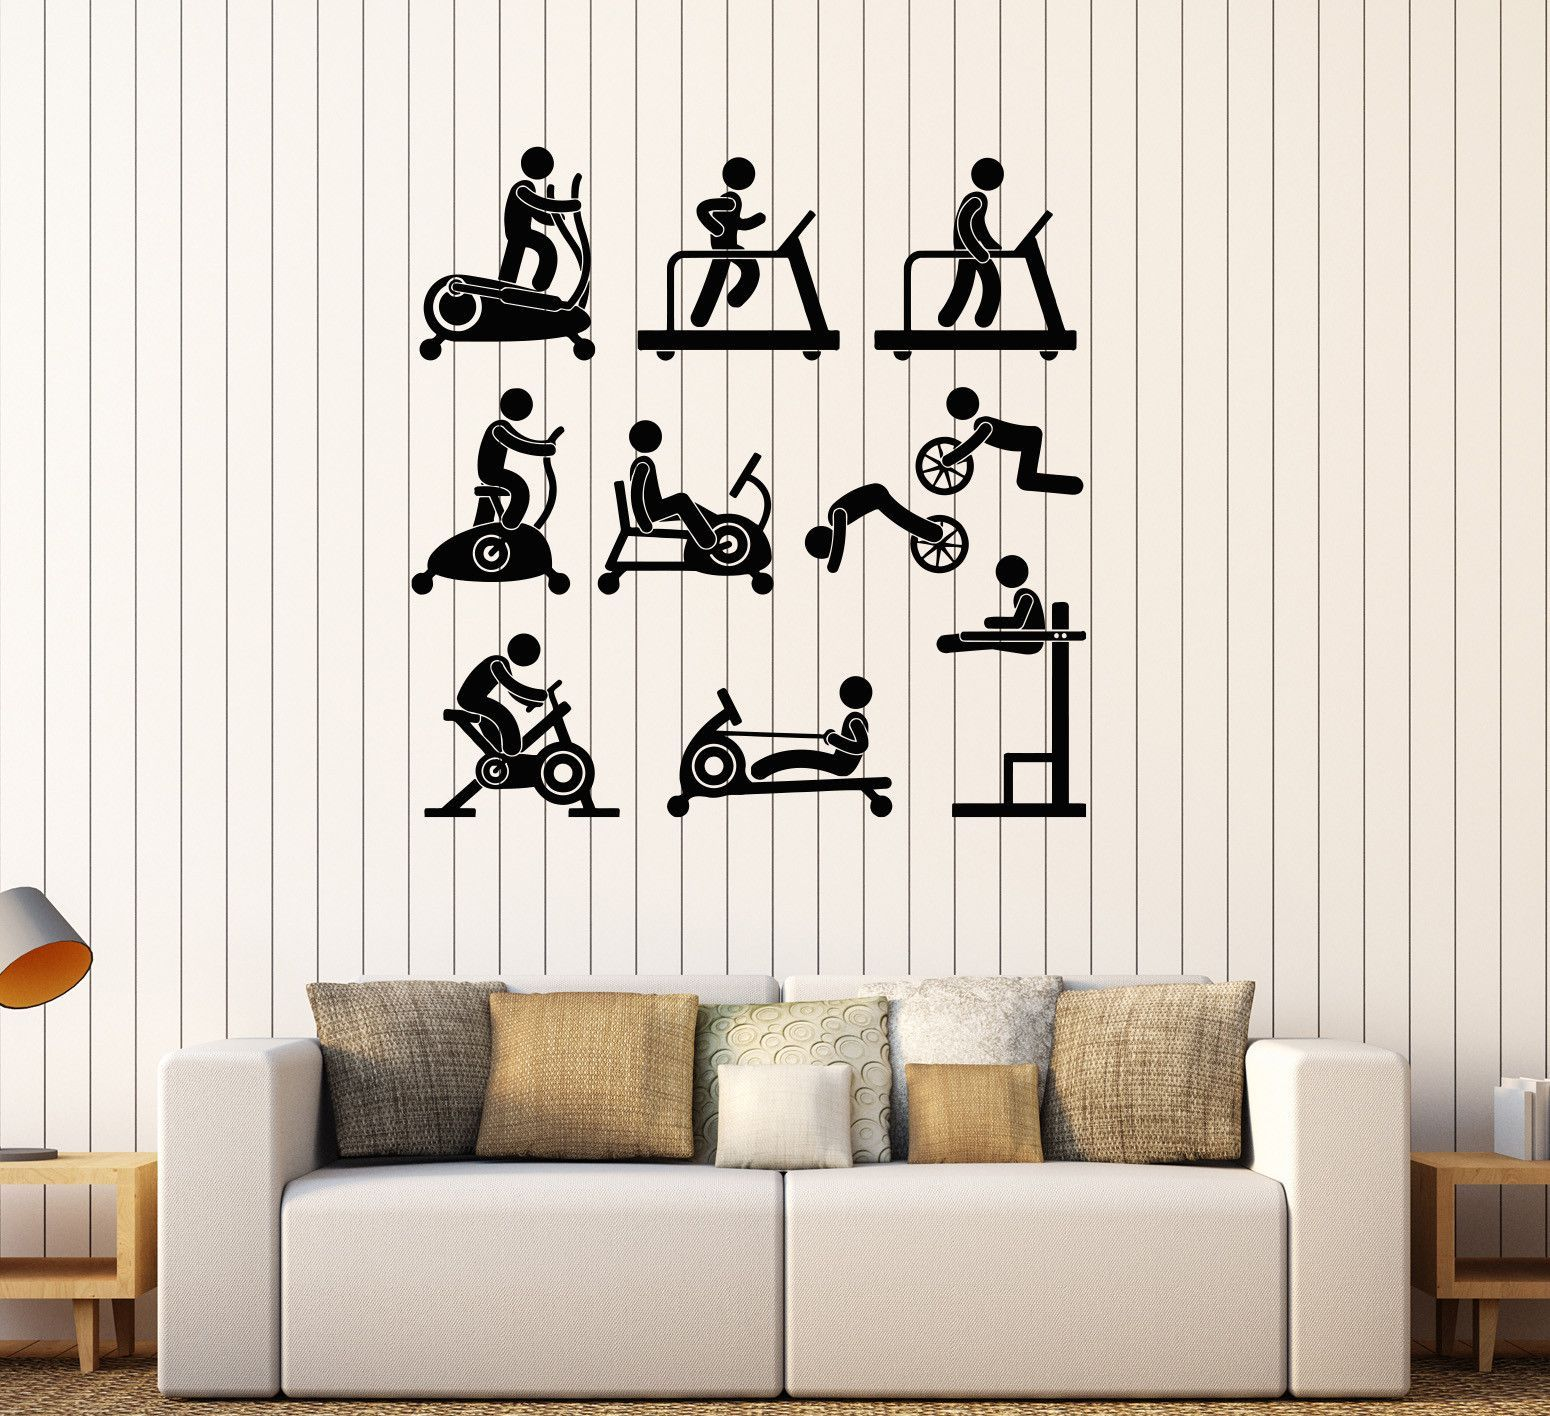 Vinyl Wall Decal Sports Gym Fitness Equipment Motivation Decor - Custom vinyl wall decal equipment